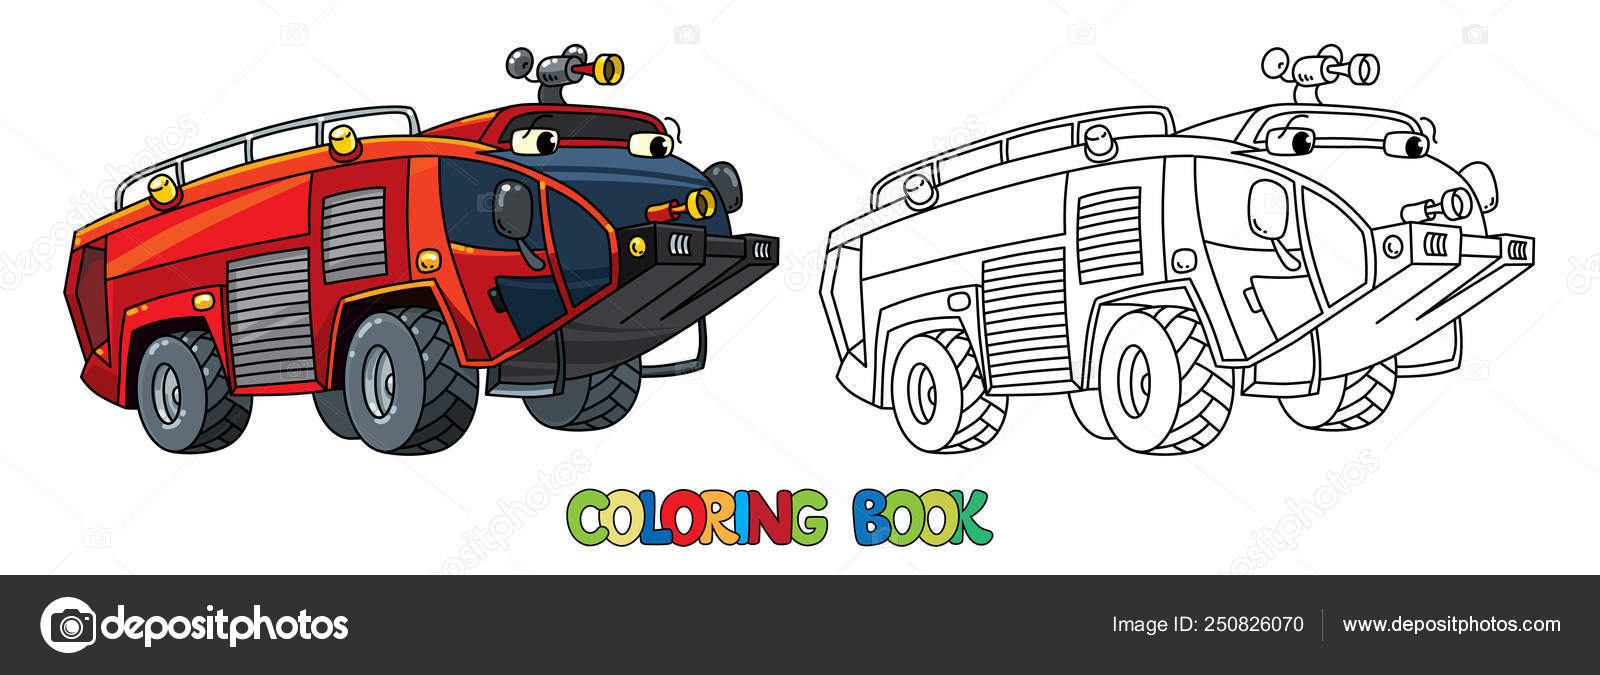 Fire Truck Or Fire Engine With Eyes Coloring Book Stock Vector